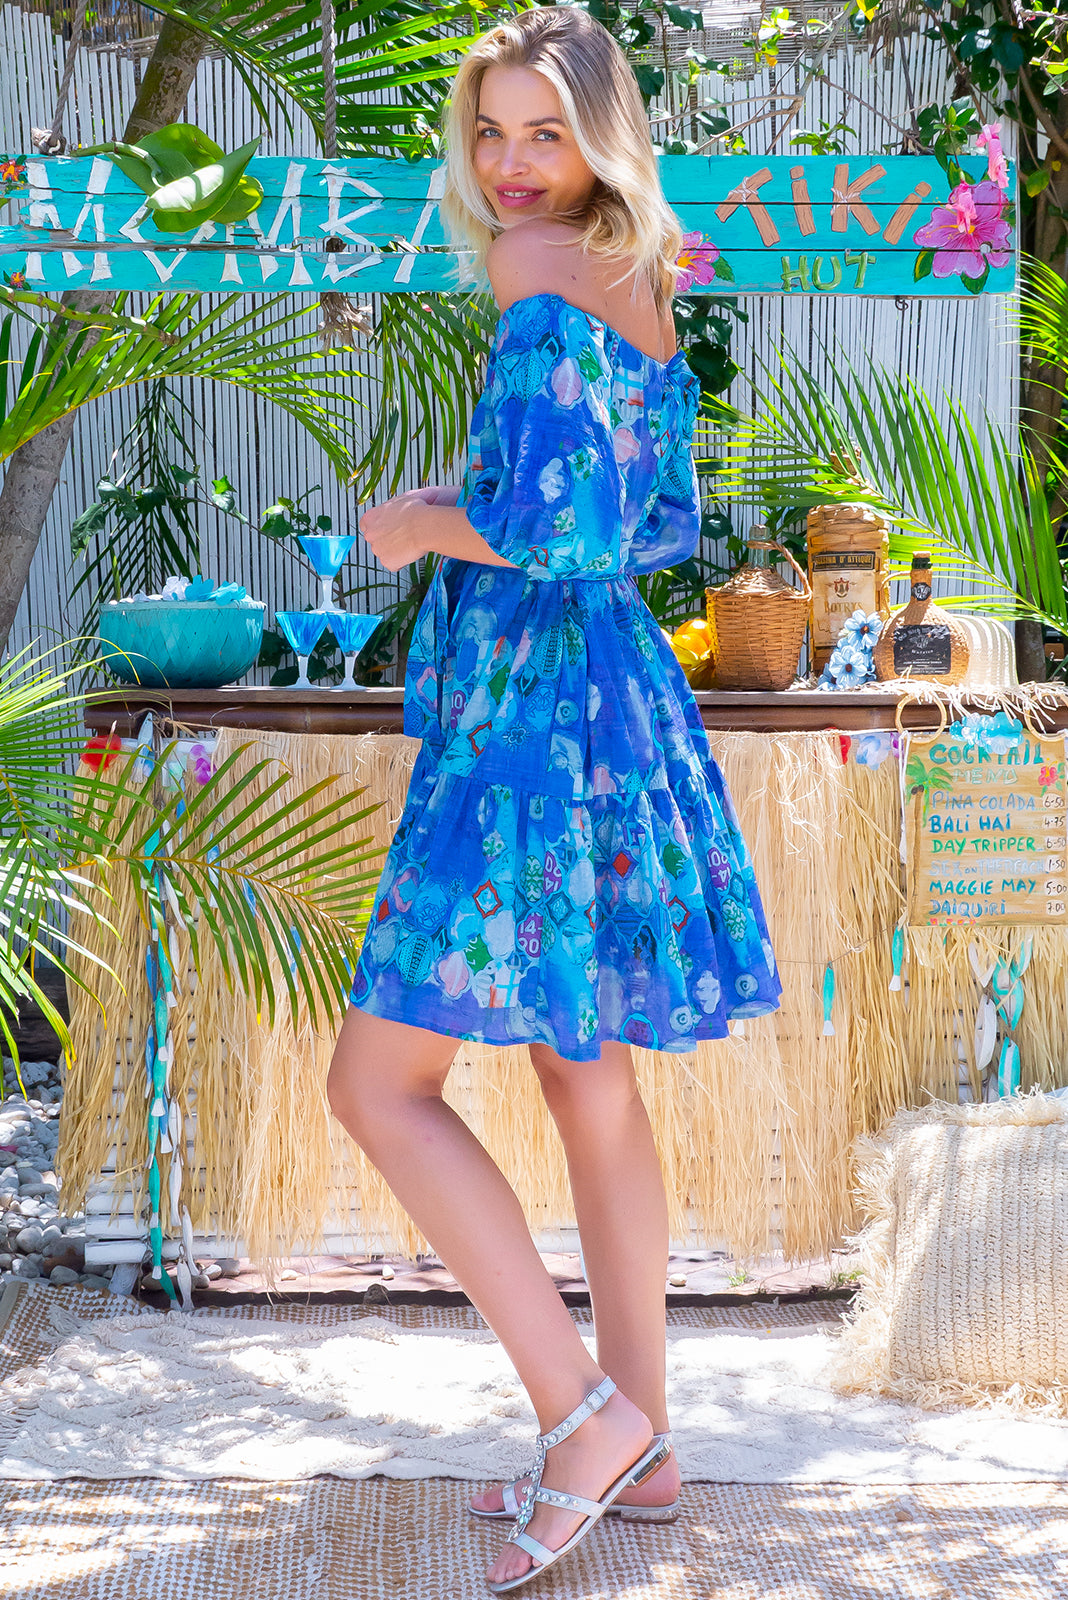 The Lulu Babe Blue Flair Swing Mini Dress is a 2-way cotton dress with blue, abstract mosaic print featuring off the shoulder style or on top of shoulders in scooped neck style and has small side pockets, fabric belt included to cinch in waist.